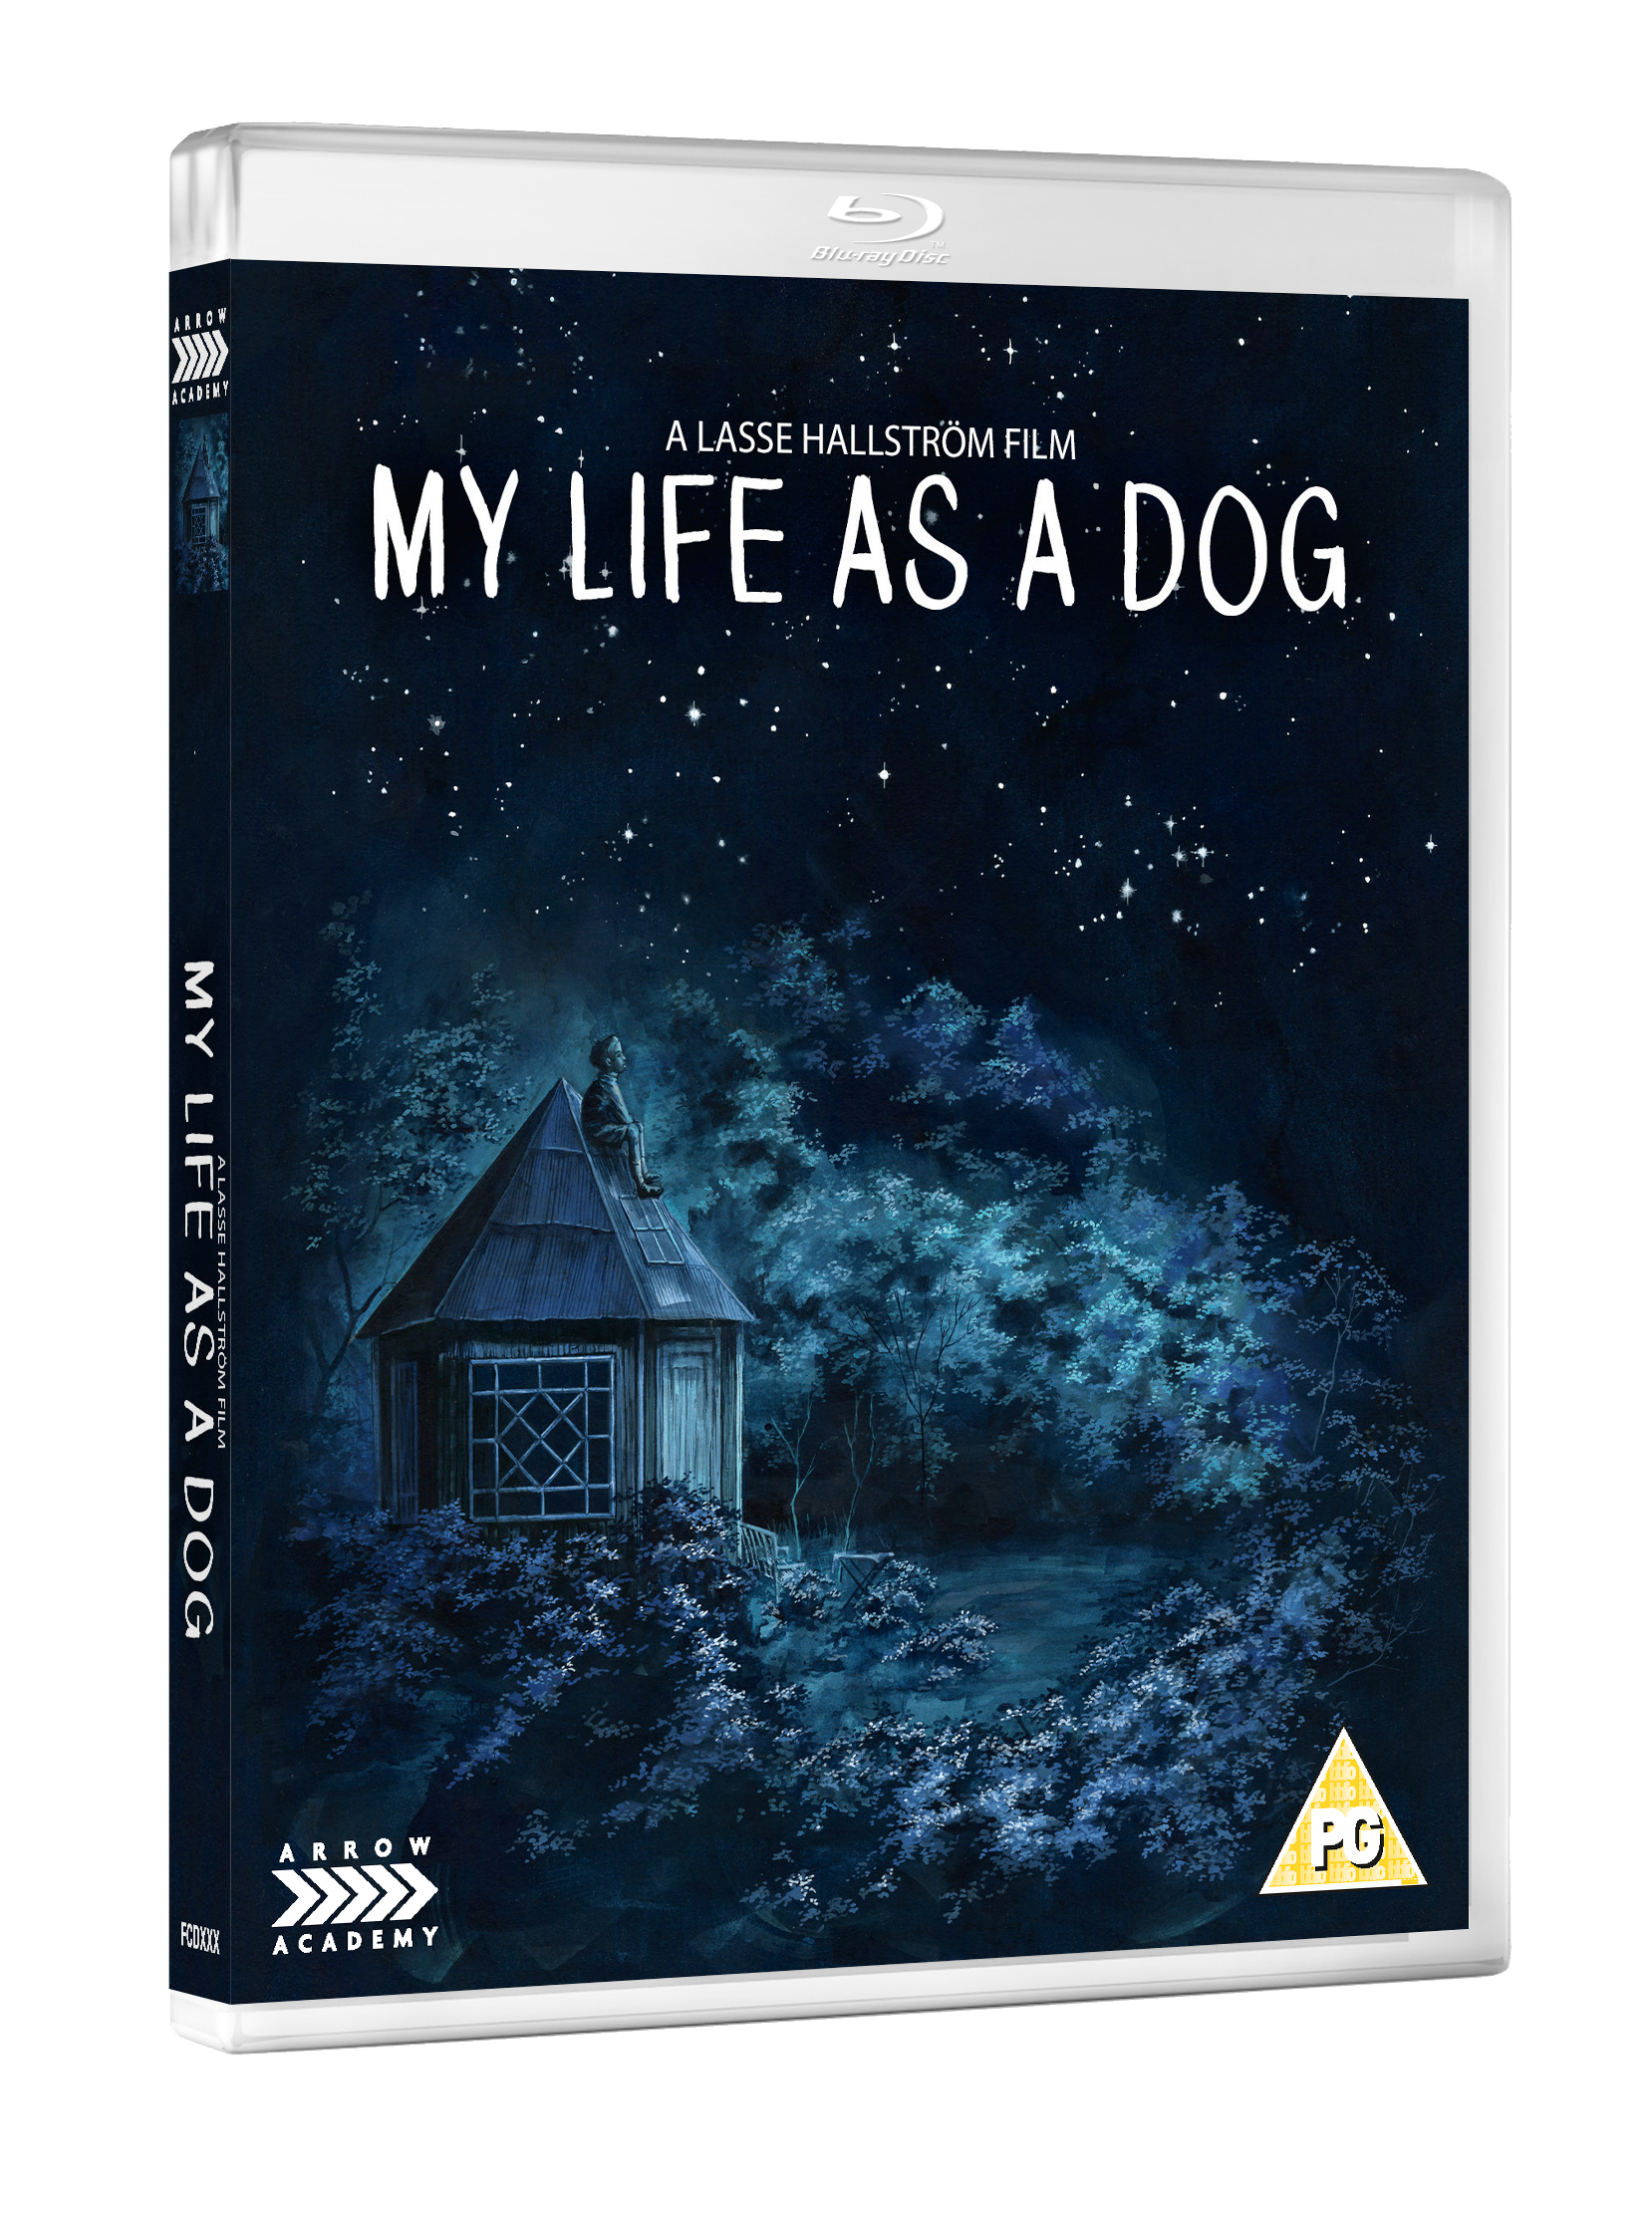 MY LIFE AS A DOG 3D BD%20(1) May 2017 releases by Arrow Academy announced